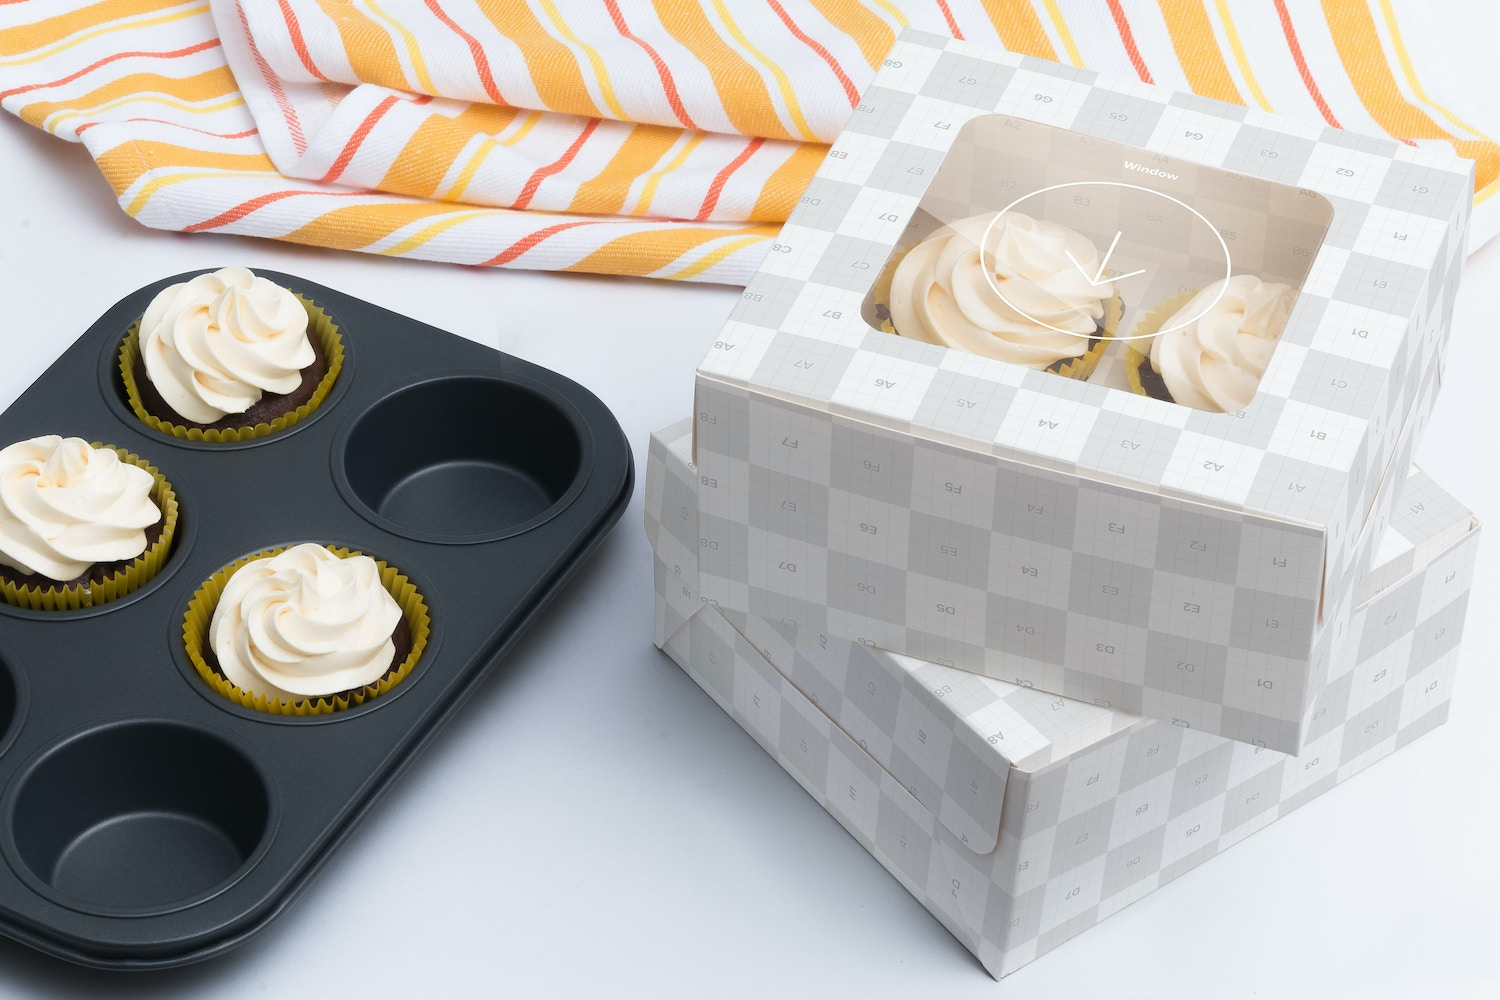 Four Cupcake Box Mockup 02 by Ktyellow  on Original Mockups